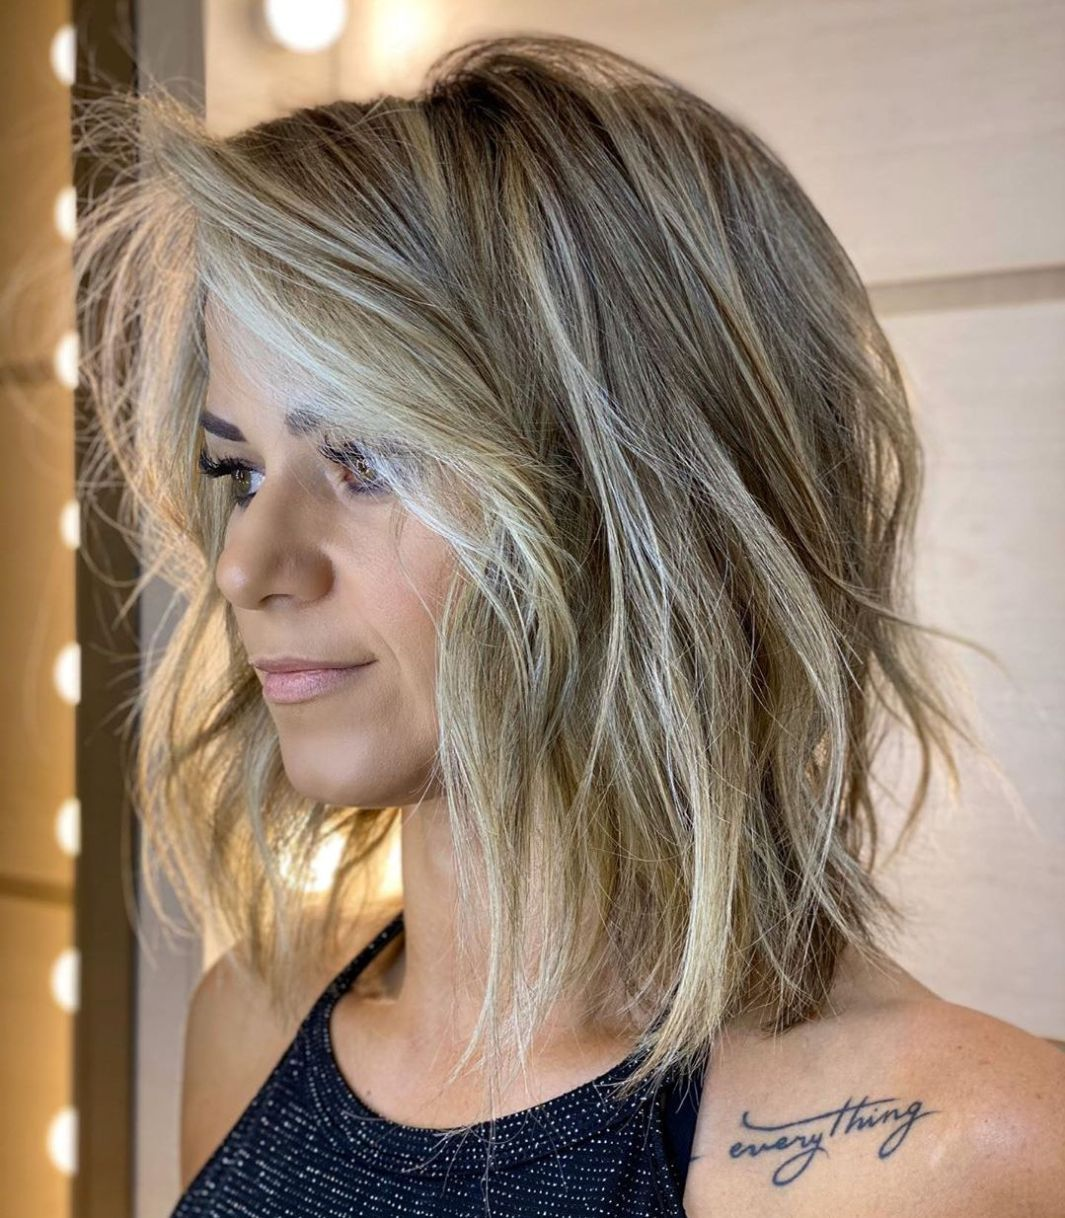 40 Best Haircuts Women Are Asking For In 2020 In 2020 Thin Hair Haircuts Trending Haircuts Haircuts For Fine Hair